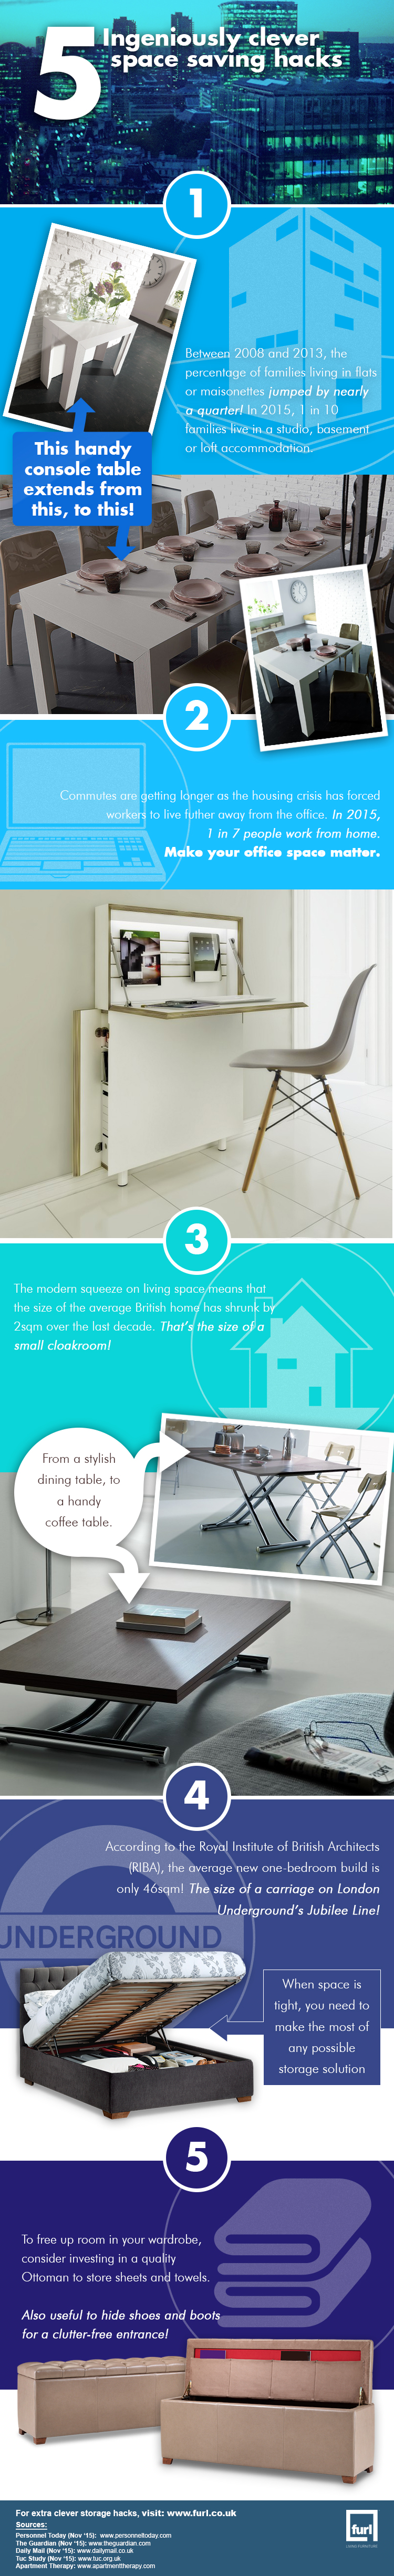 5 ingeniously clever space saving hacks infographic